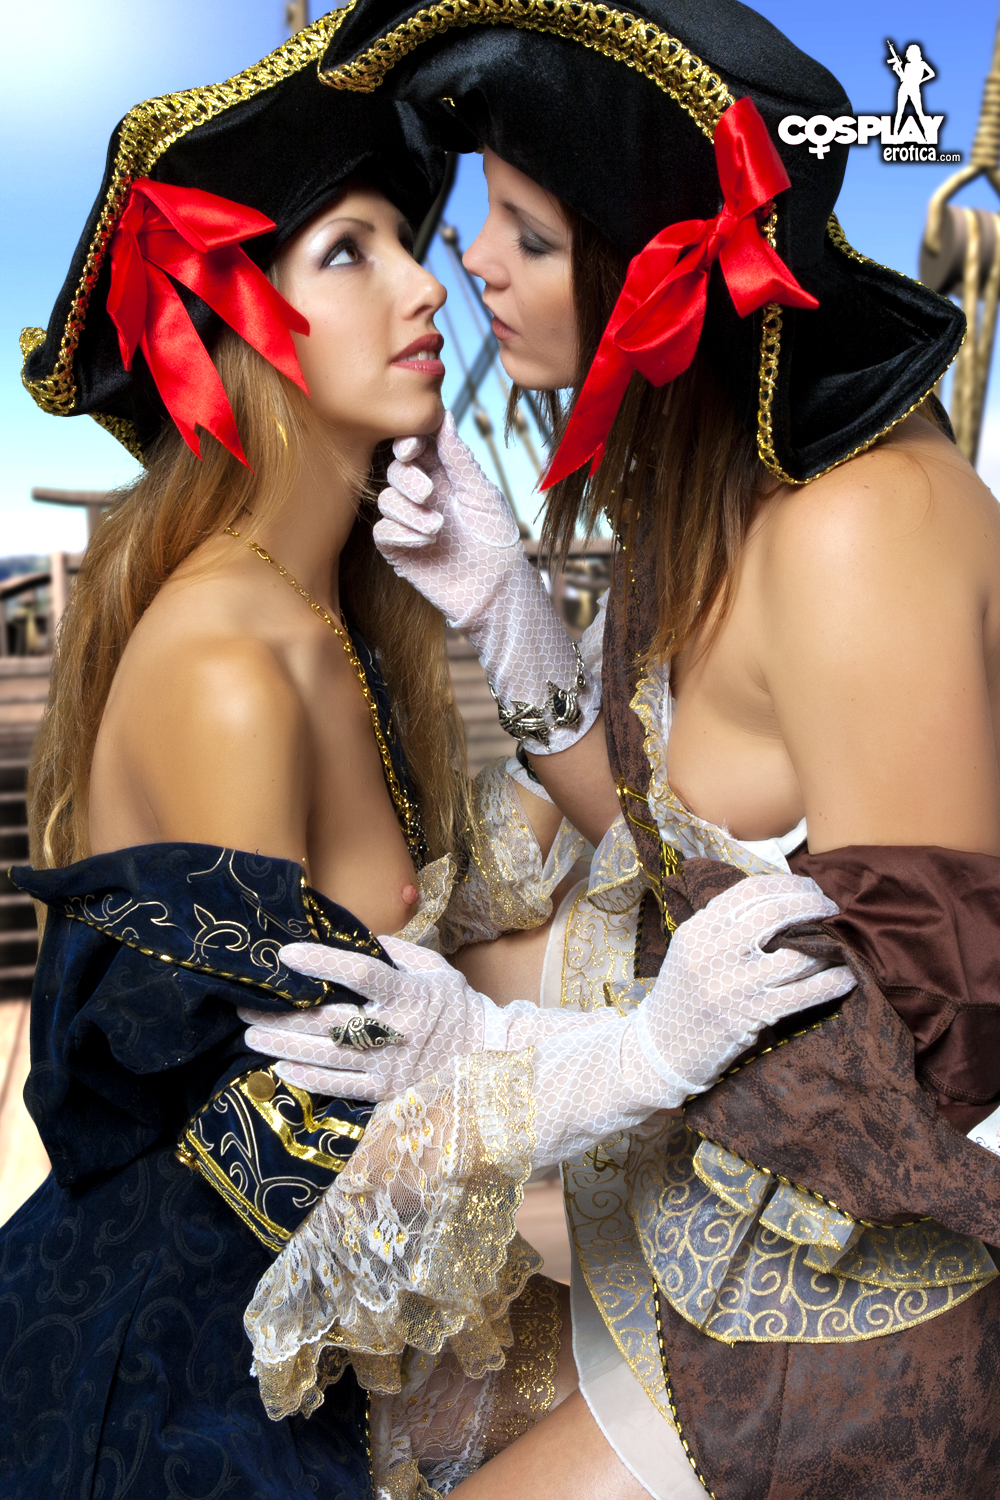 Right! Picture of pirates girls naked apologise, but